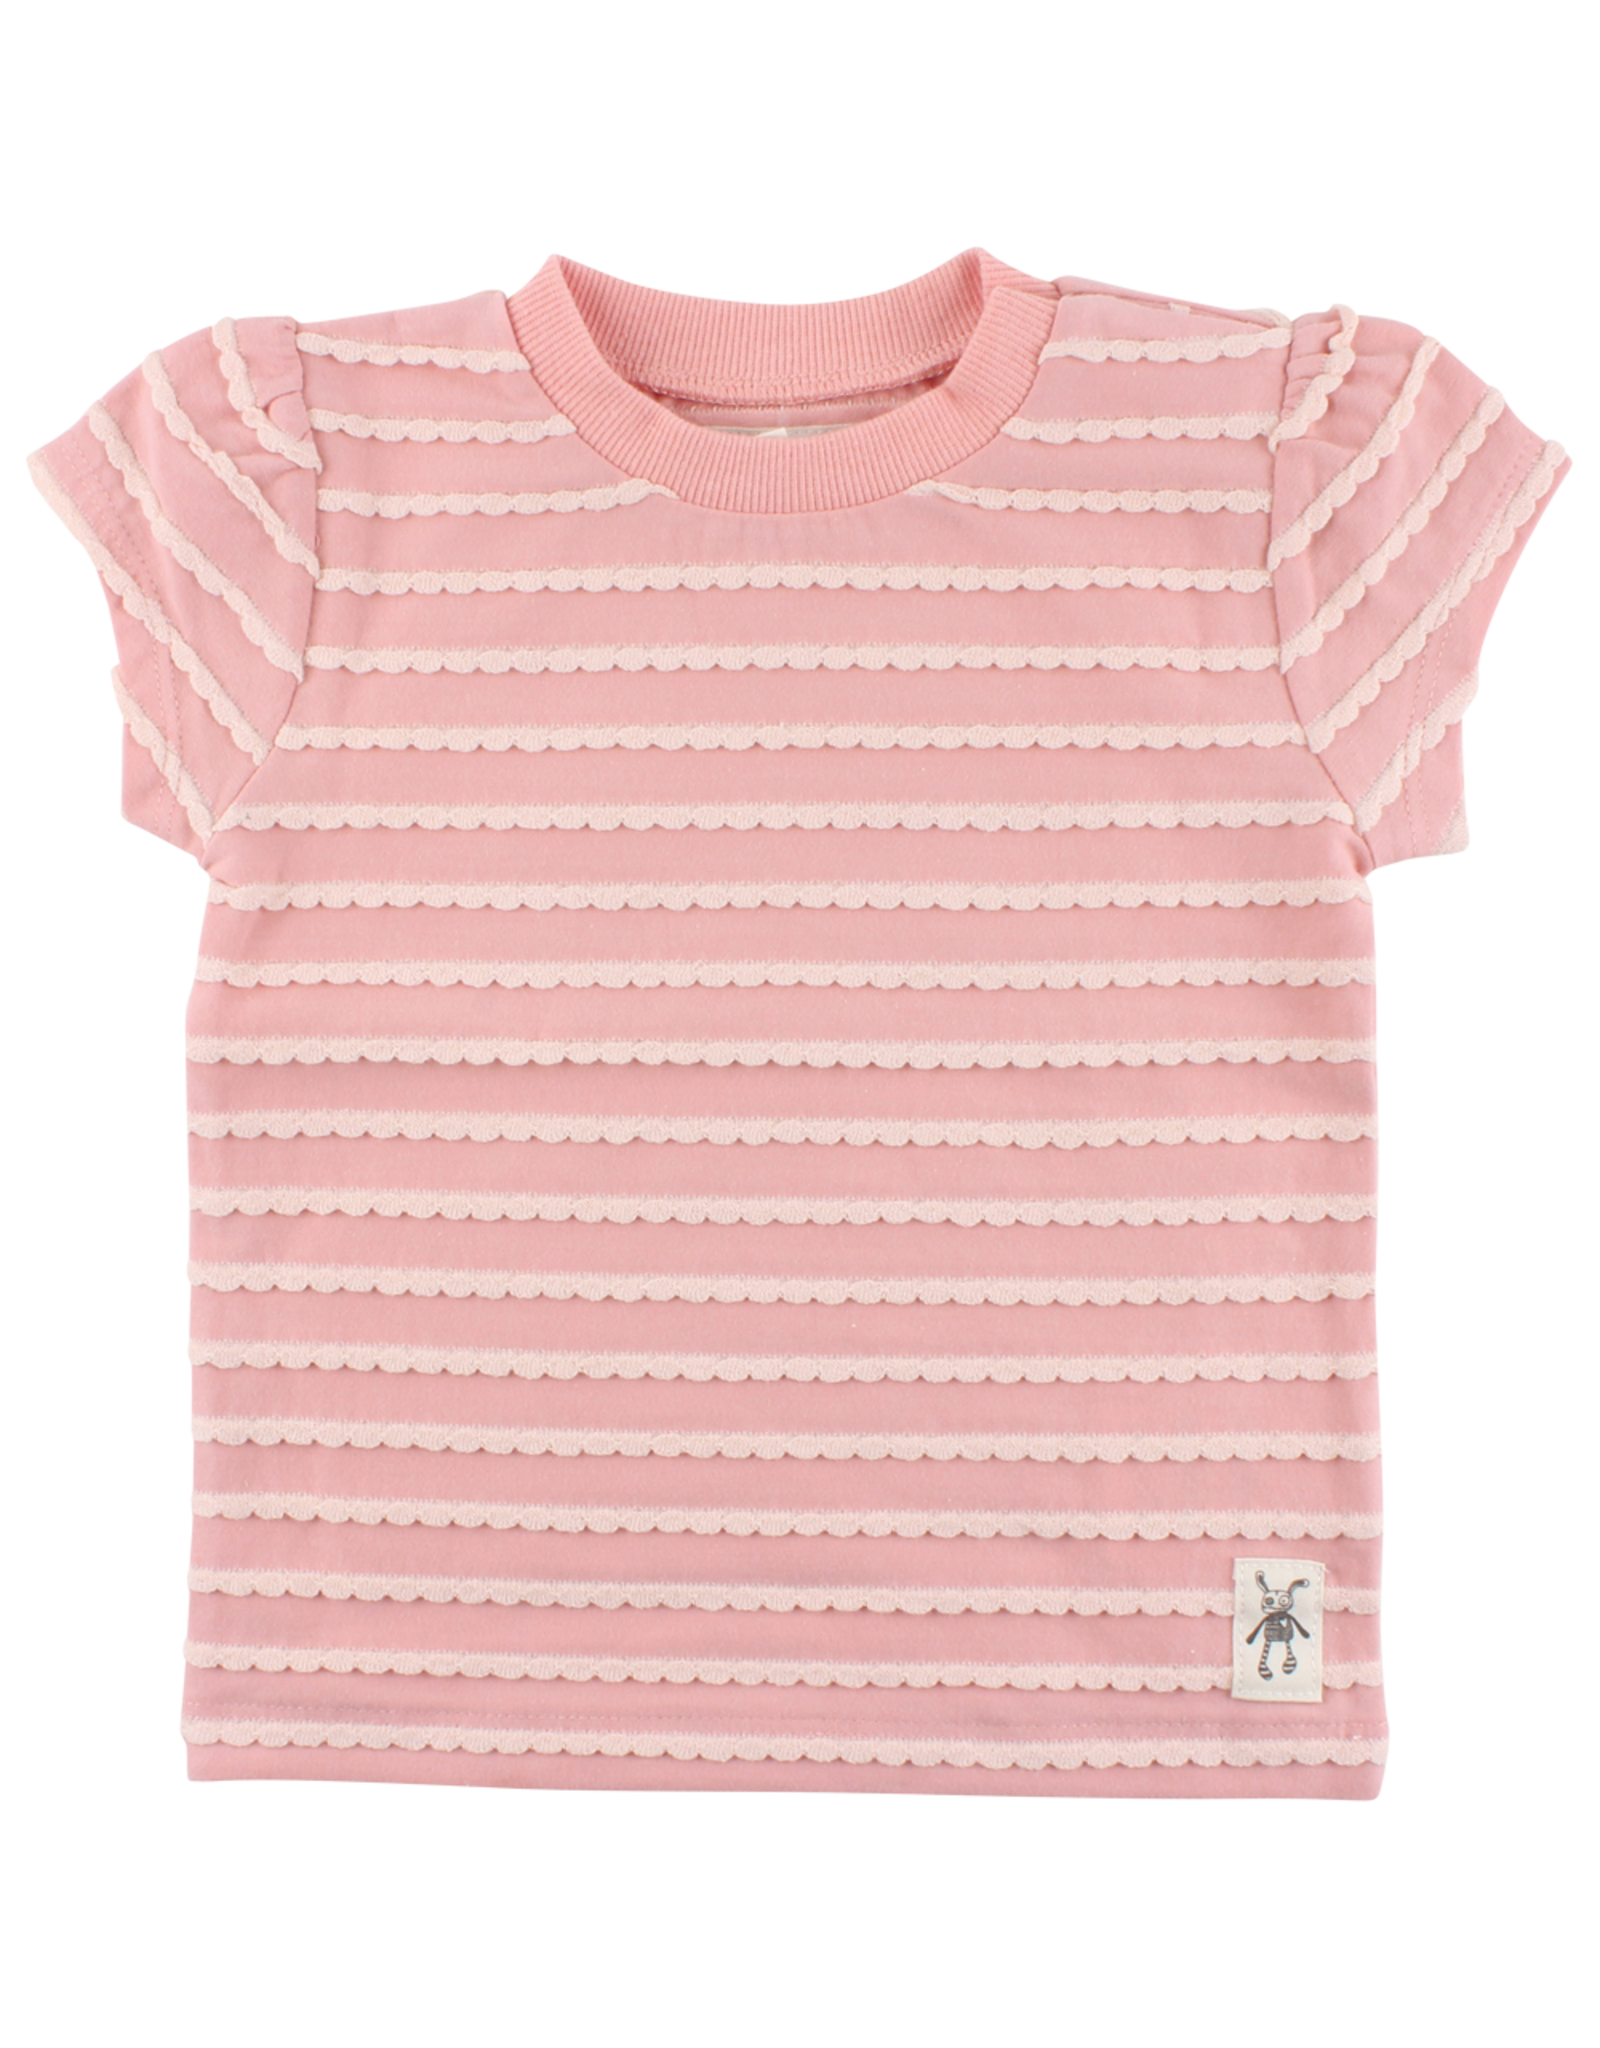 Small Rags Small Rags Short Sleeve T-shirt Coral Cloud